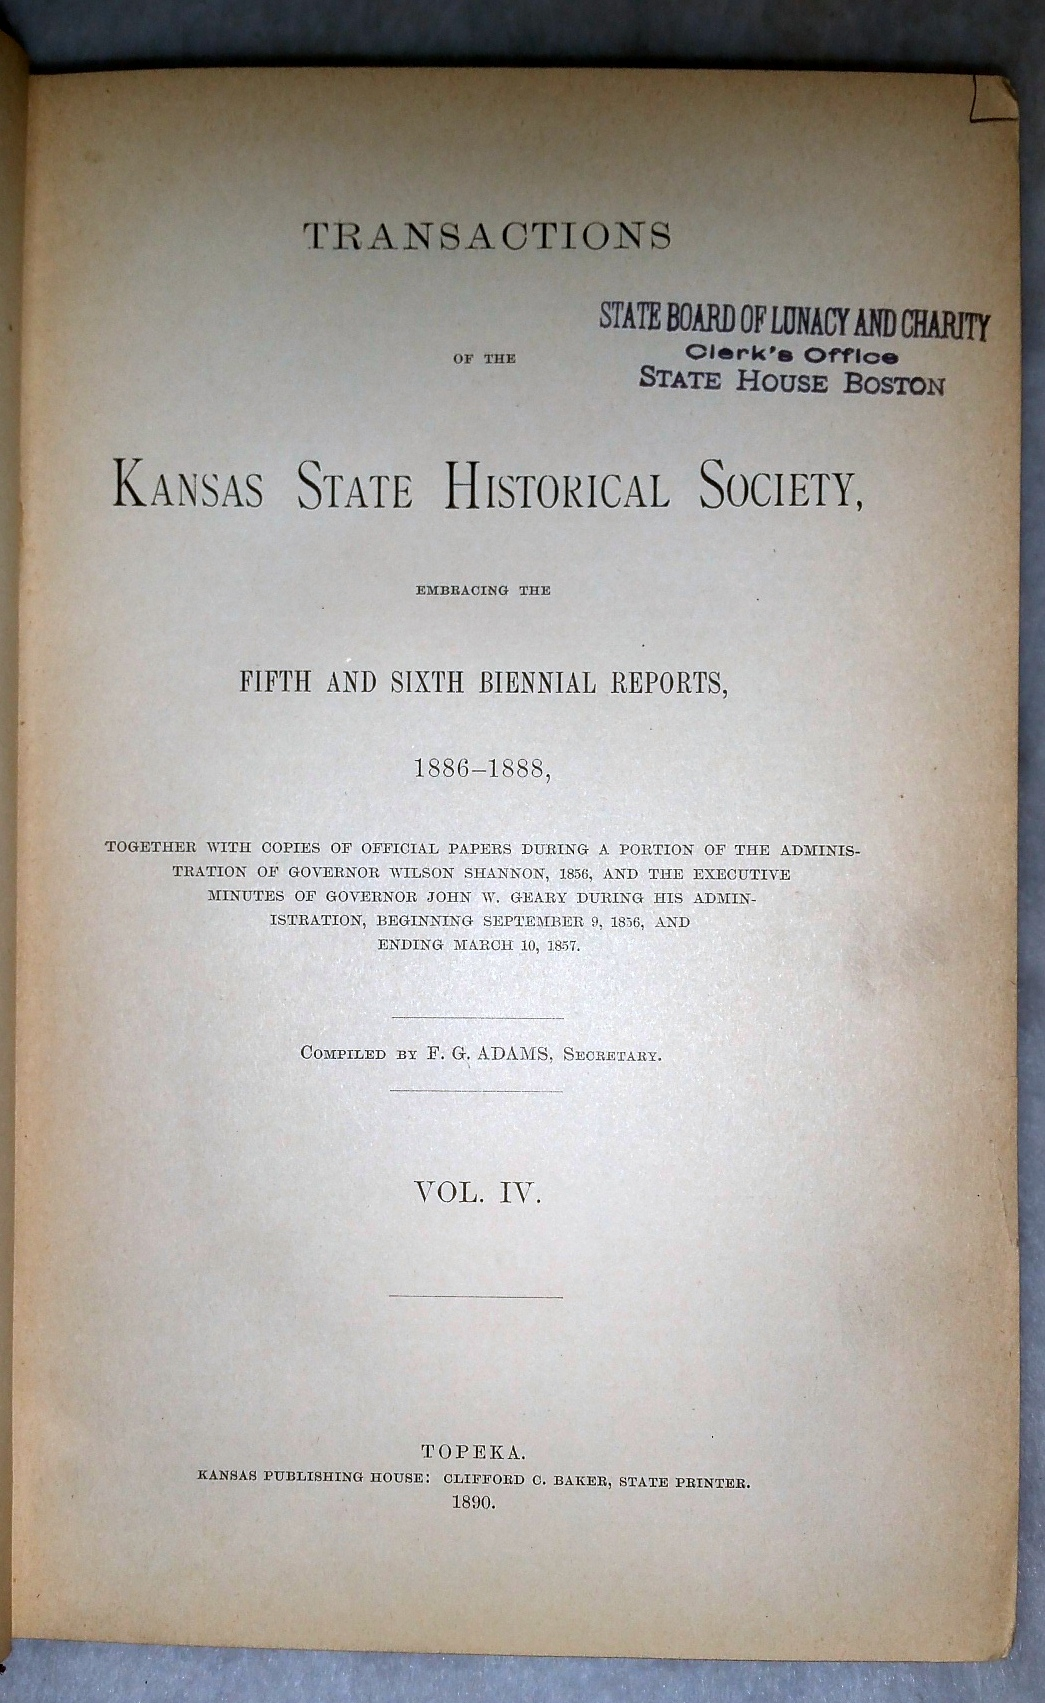 Image for Transactions of the Kansas State Historical Society, Embracing the Fifth and Sixth Biennial Reports, 1886-1888... Vol. IV. (Kansas Historical Collections, Vol 4)